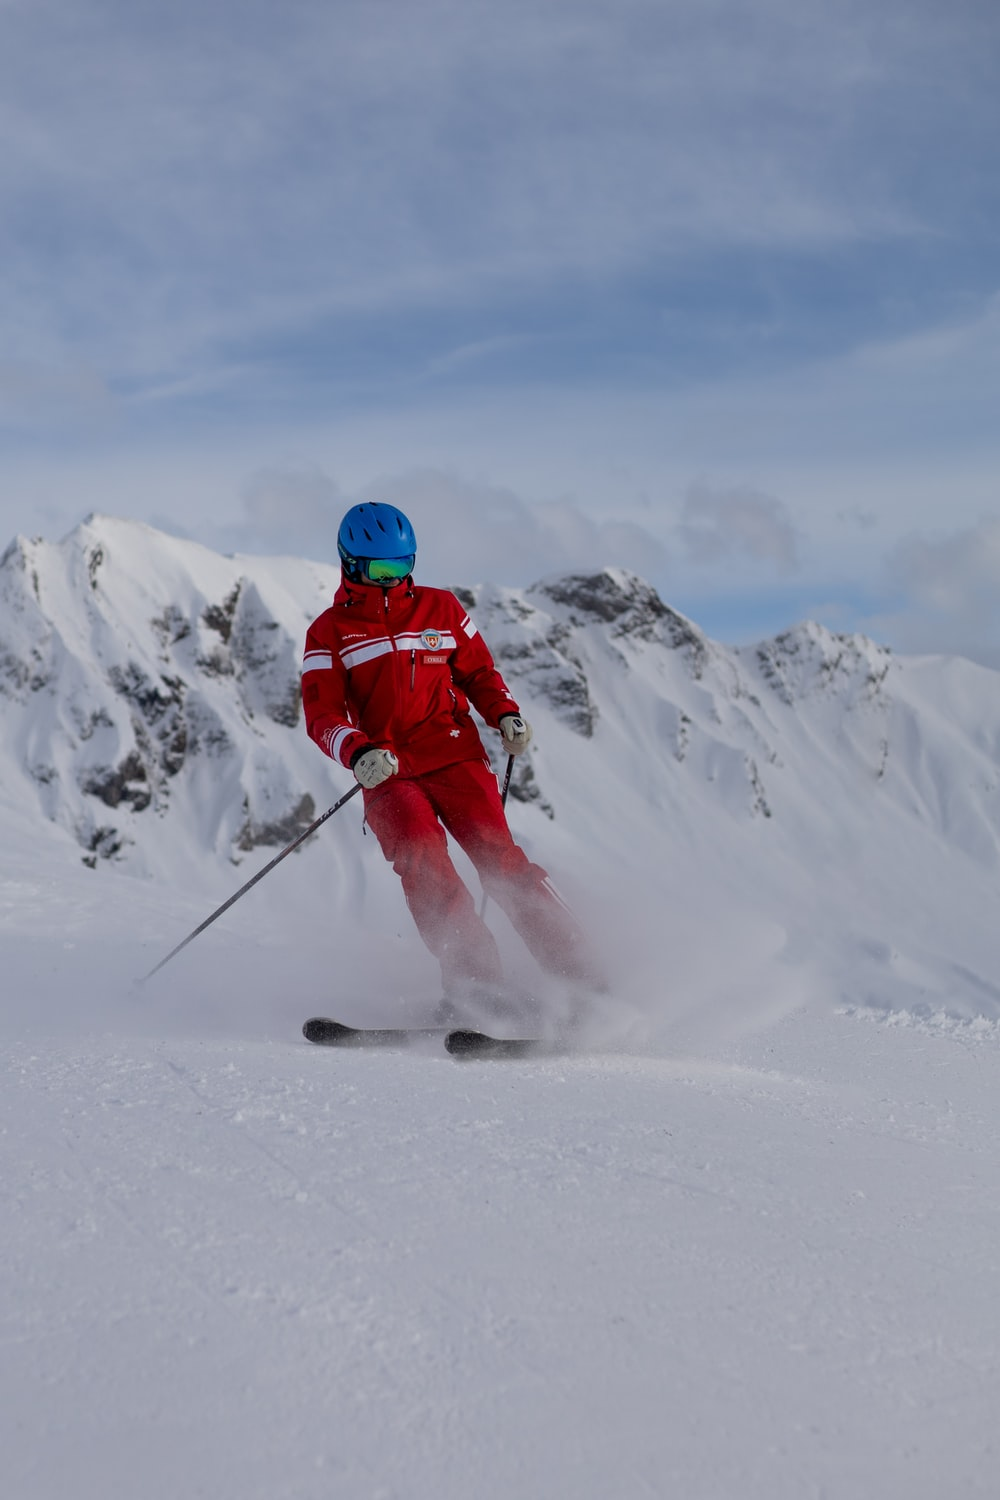 person in red jacket and blue helmet standing on snow covered ground during daytime